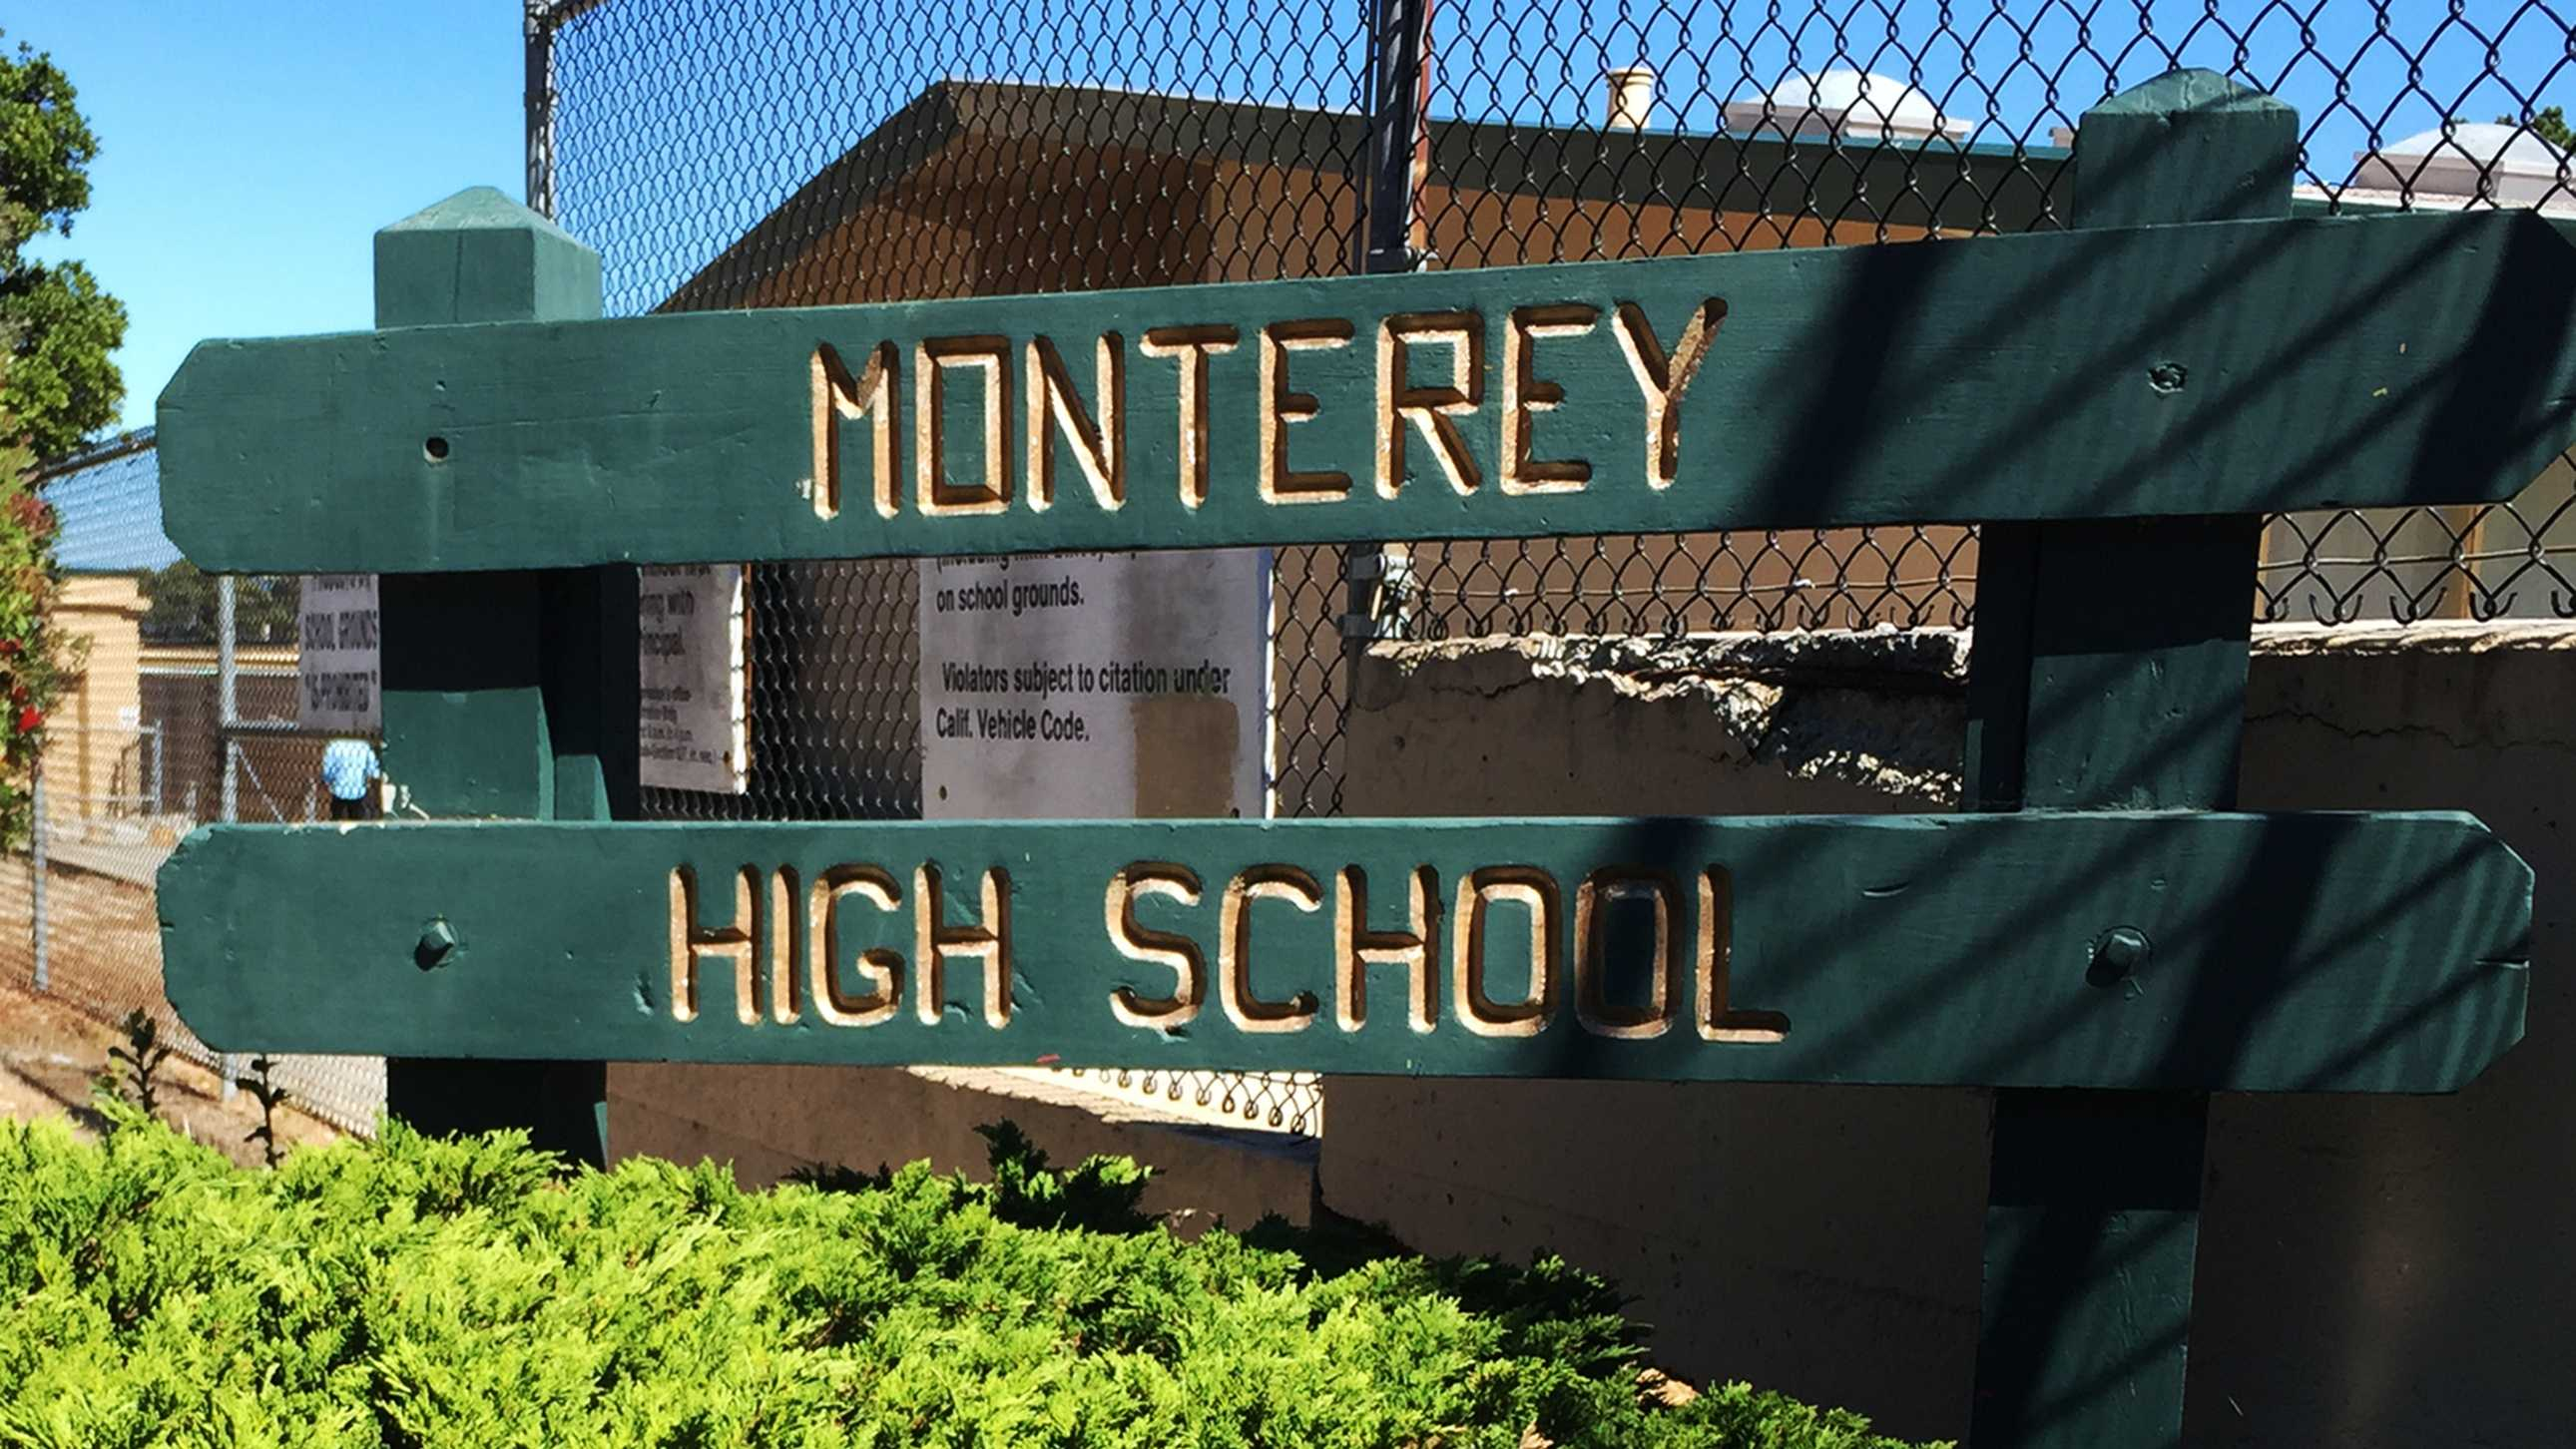 Monterey High School  (Aug. 12, 2015)